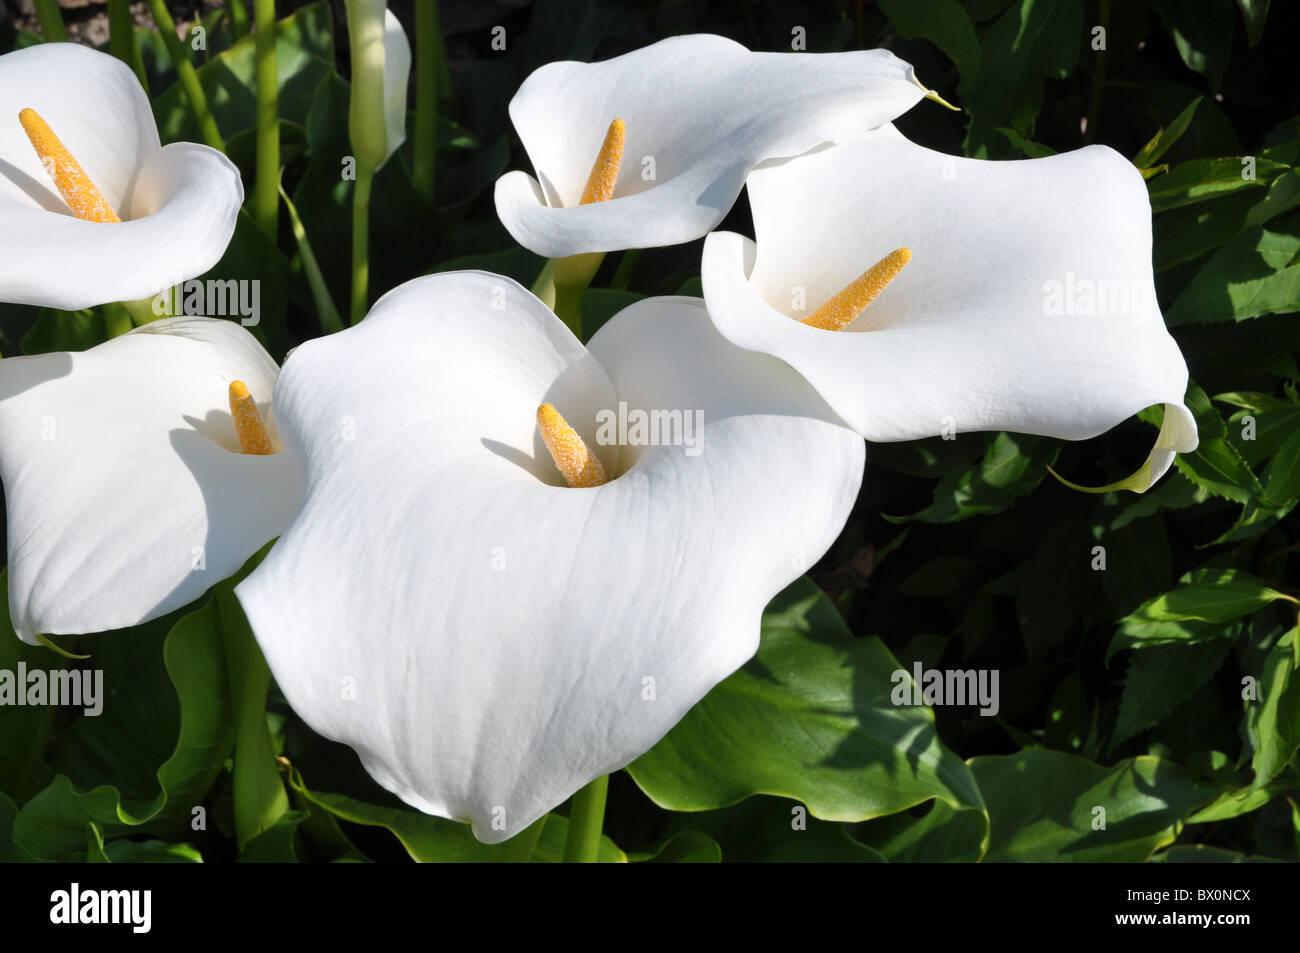 Group of Arum lilly flowers with yellow spadix Stock Photo